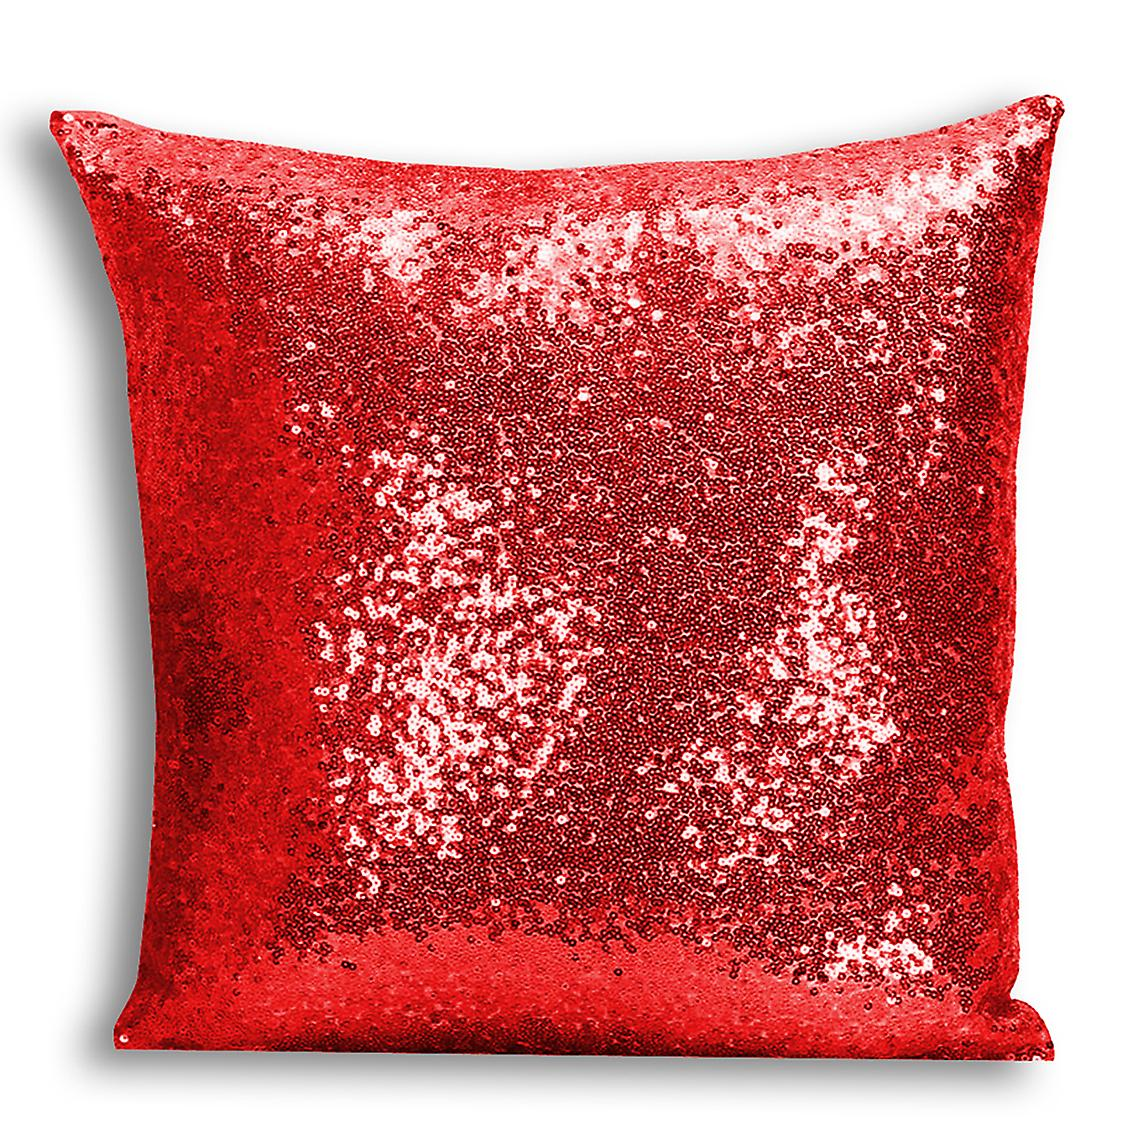 12 Printed Cover Home tronixsUnicorn Sequin Red Decor I Design CushionPillow For qSMGUzVp